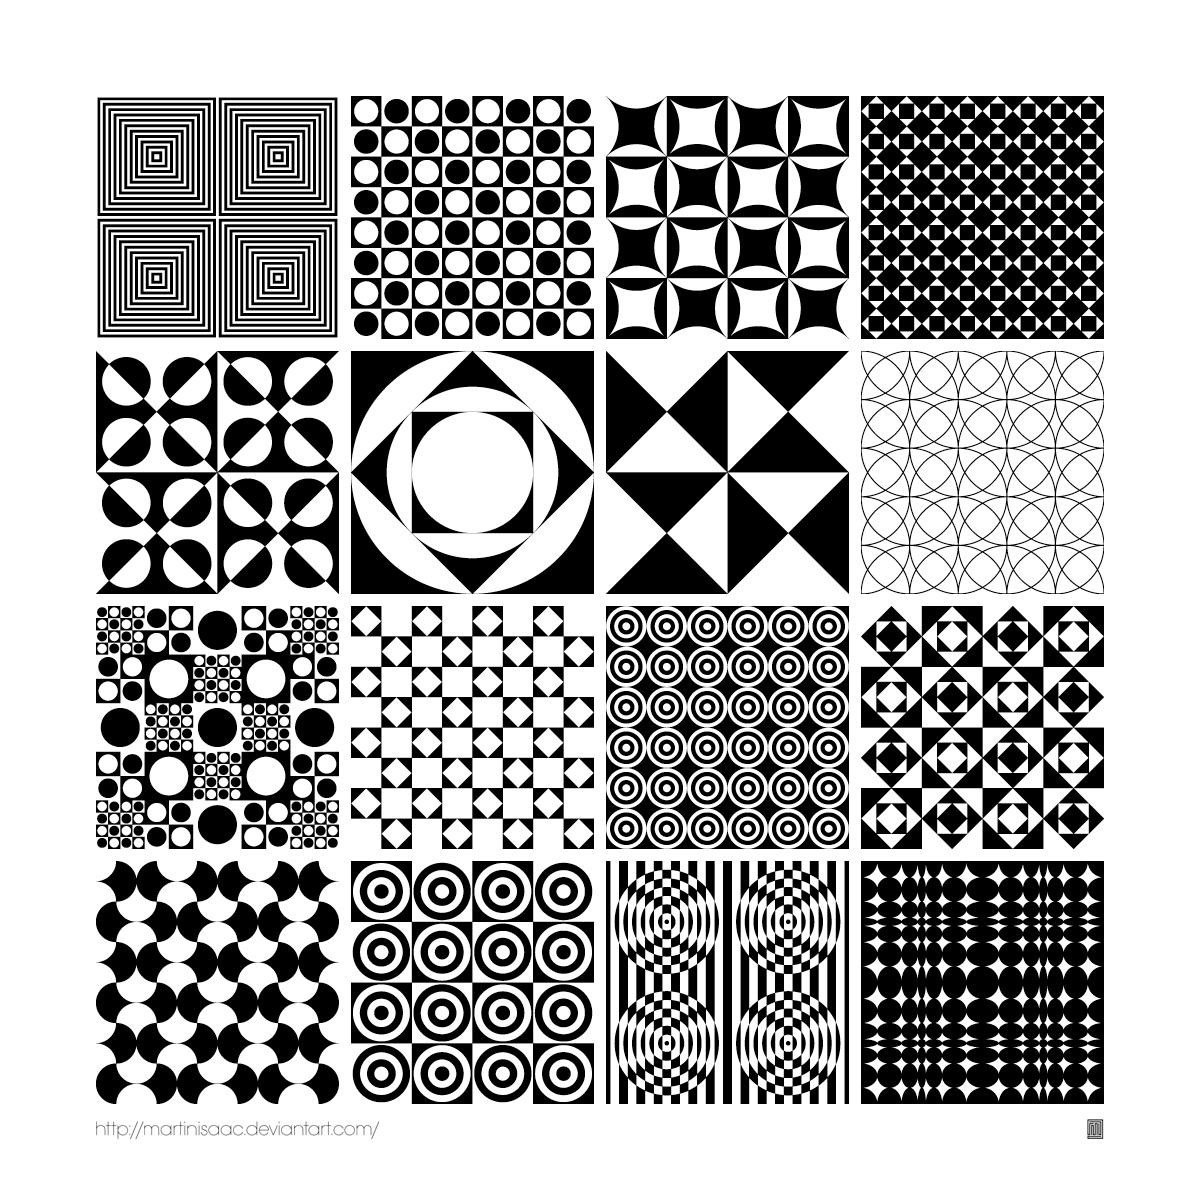 16 Free Monochrome Panton Patterns by Martin Isaac